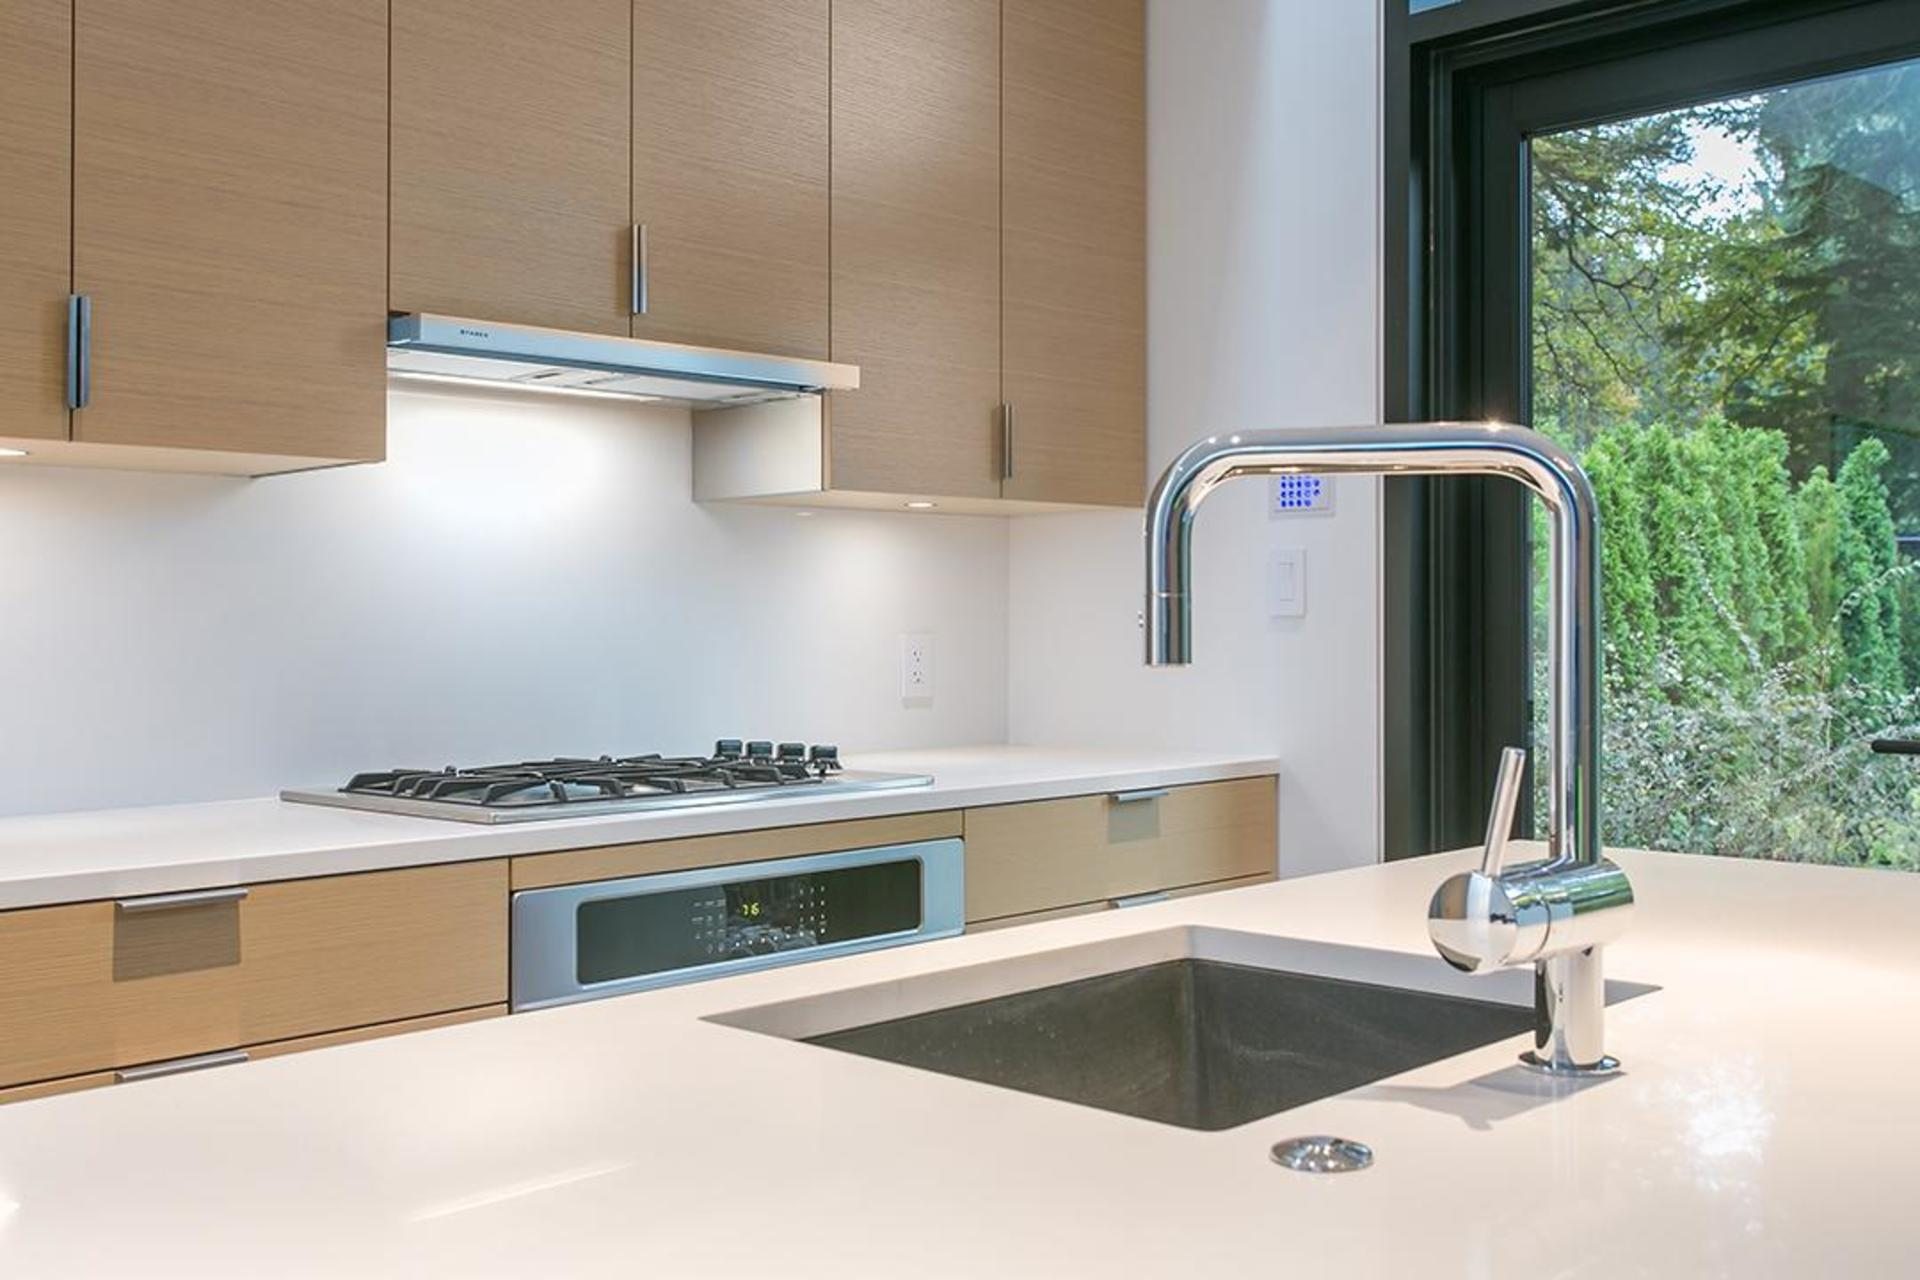 Appliances at Address Upon Request, Point Grey, Vancouver West